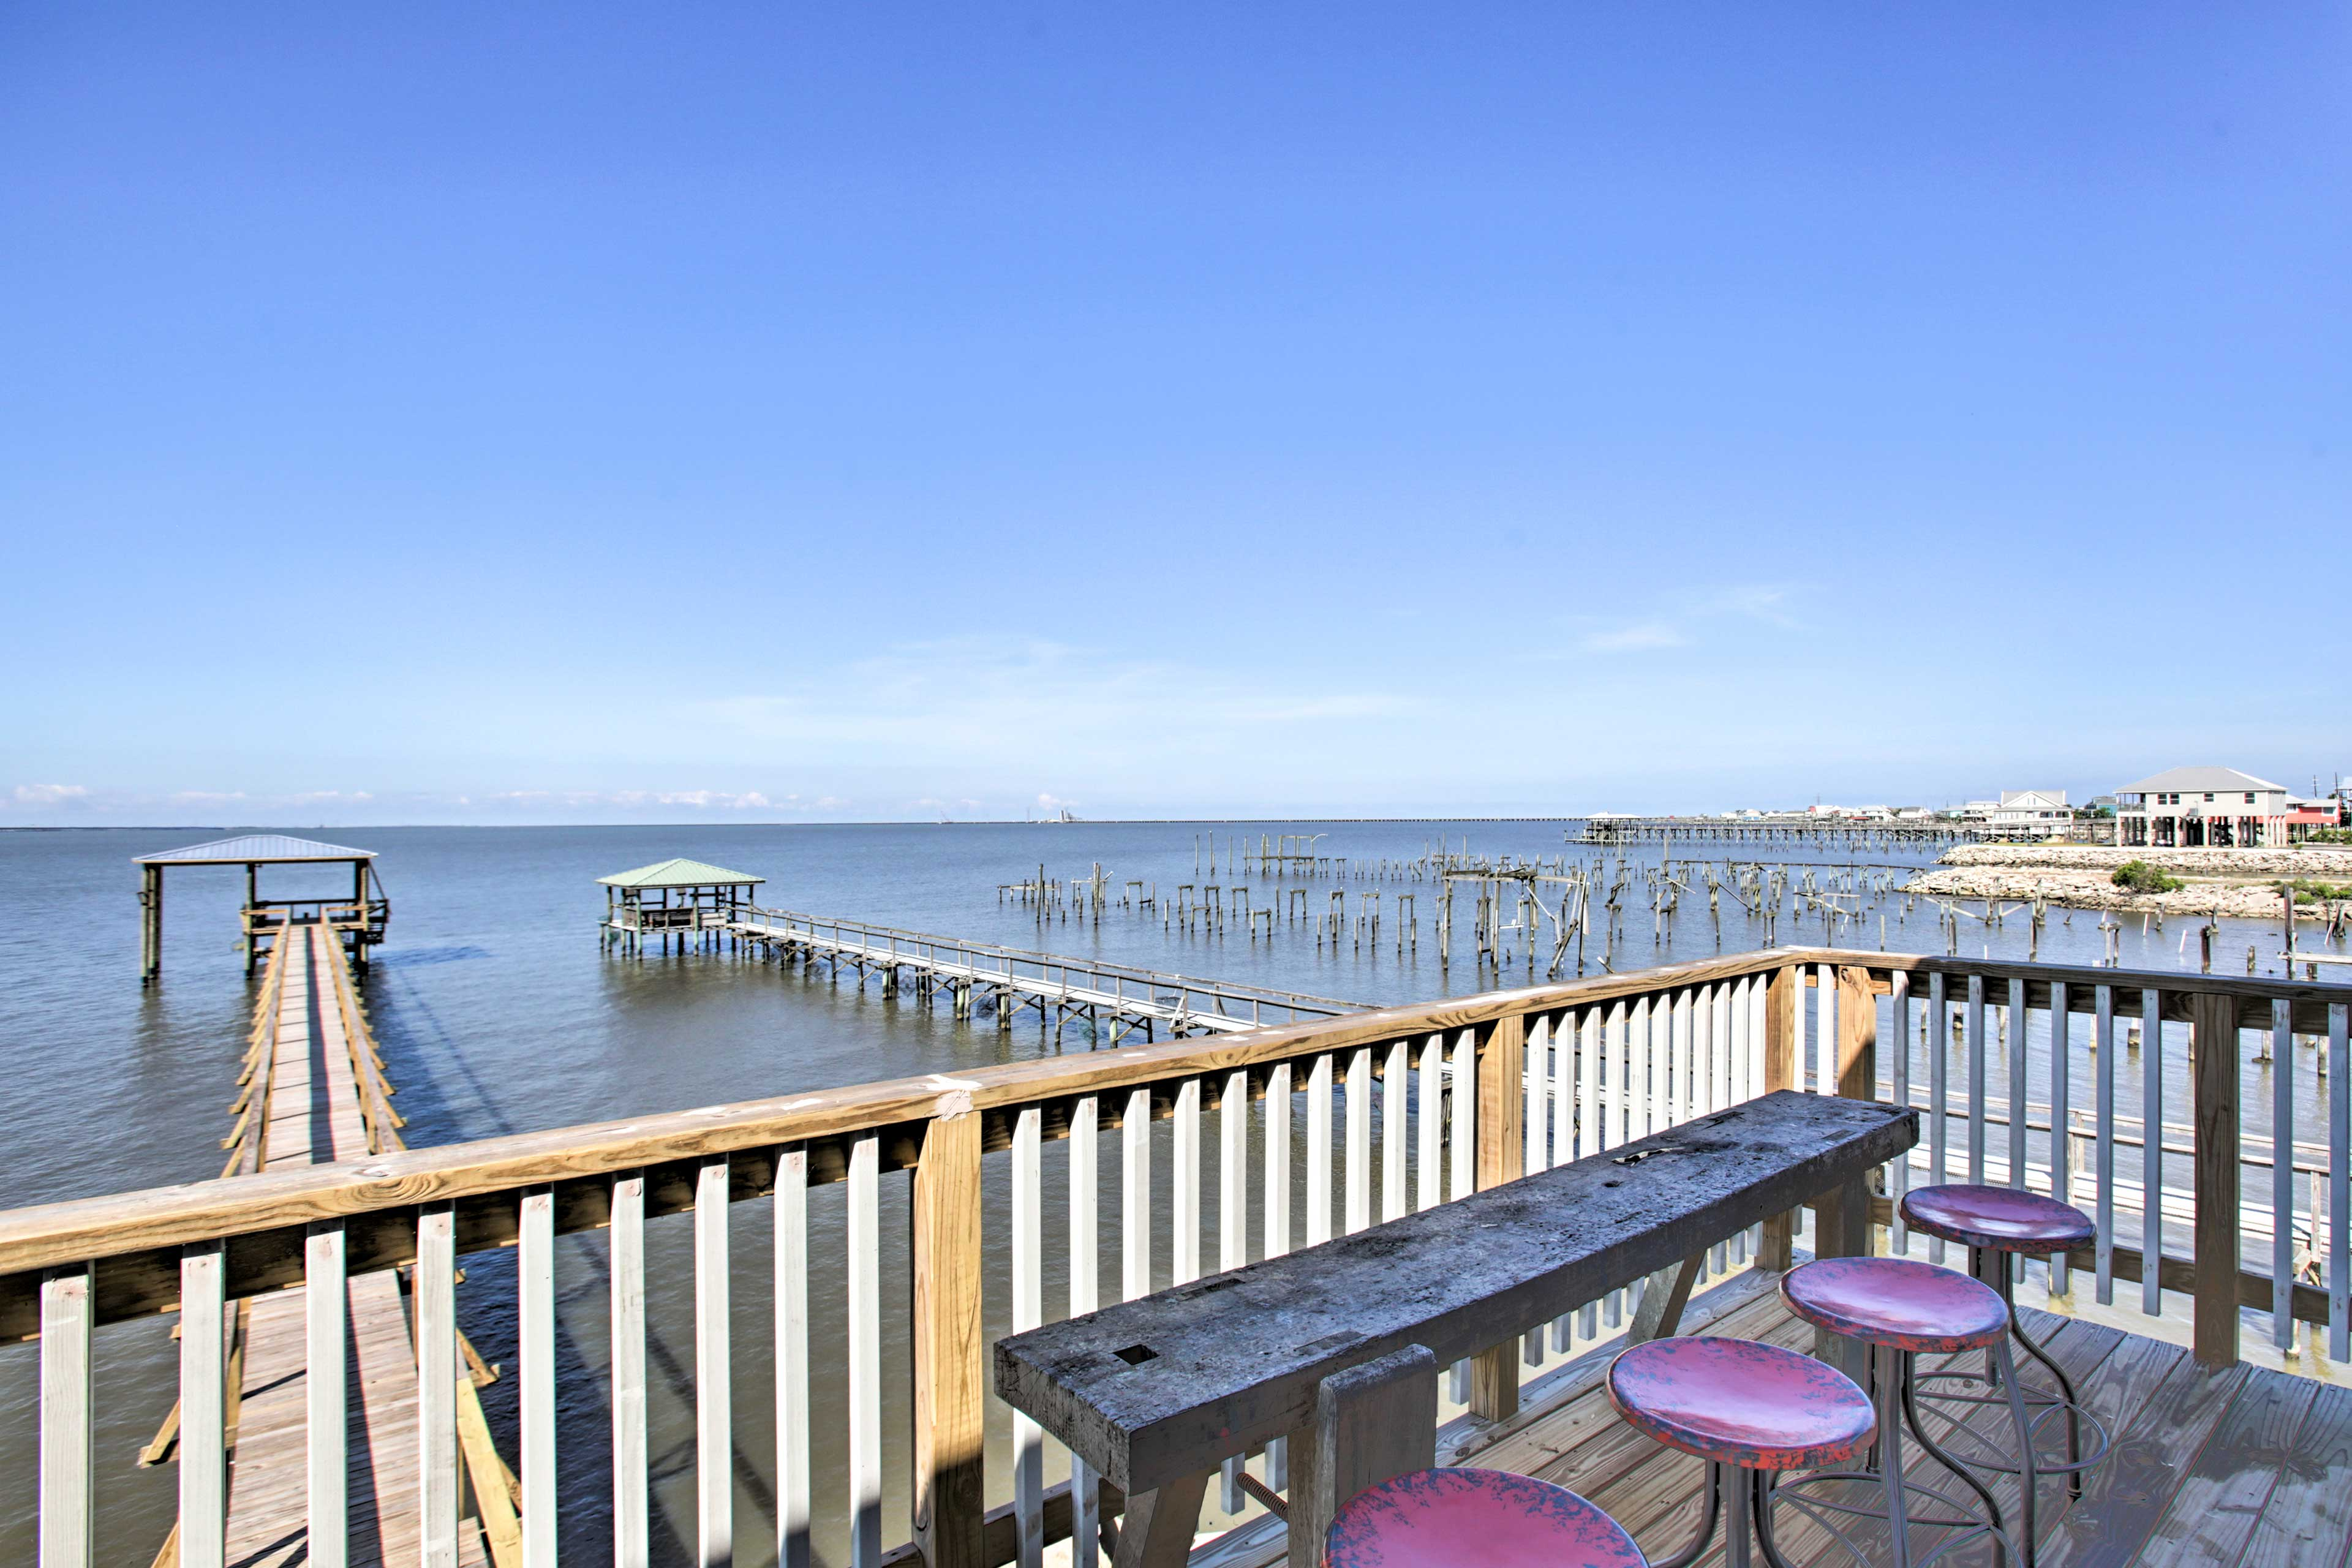 Dine al fresco on the furnished, waterfront deck.